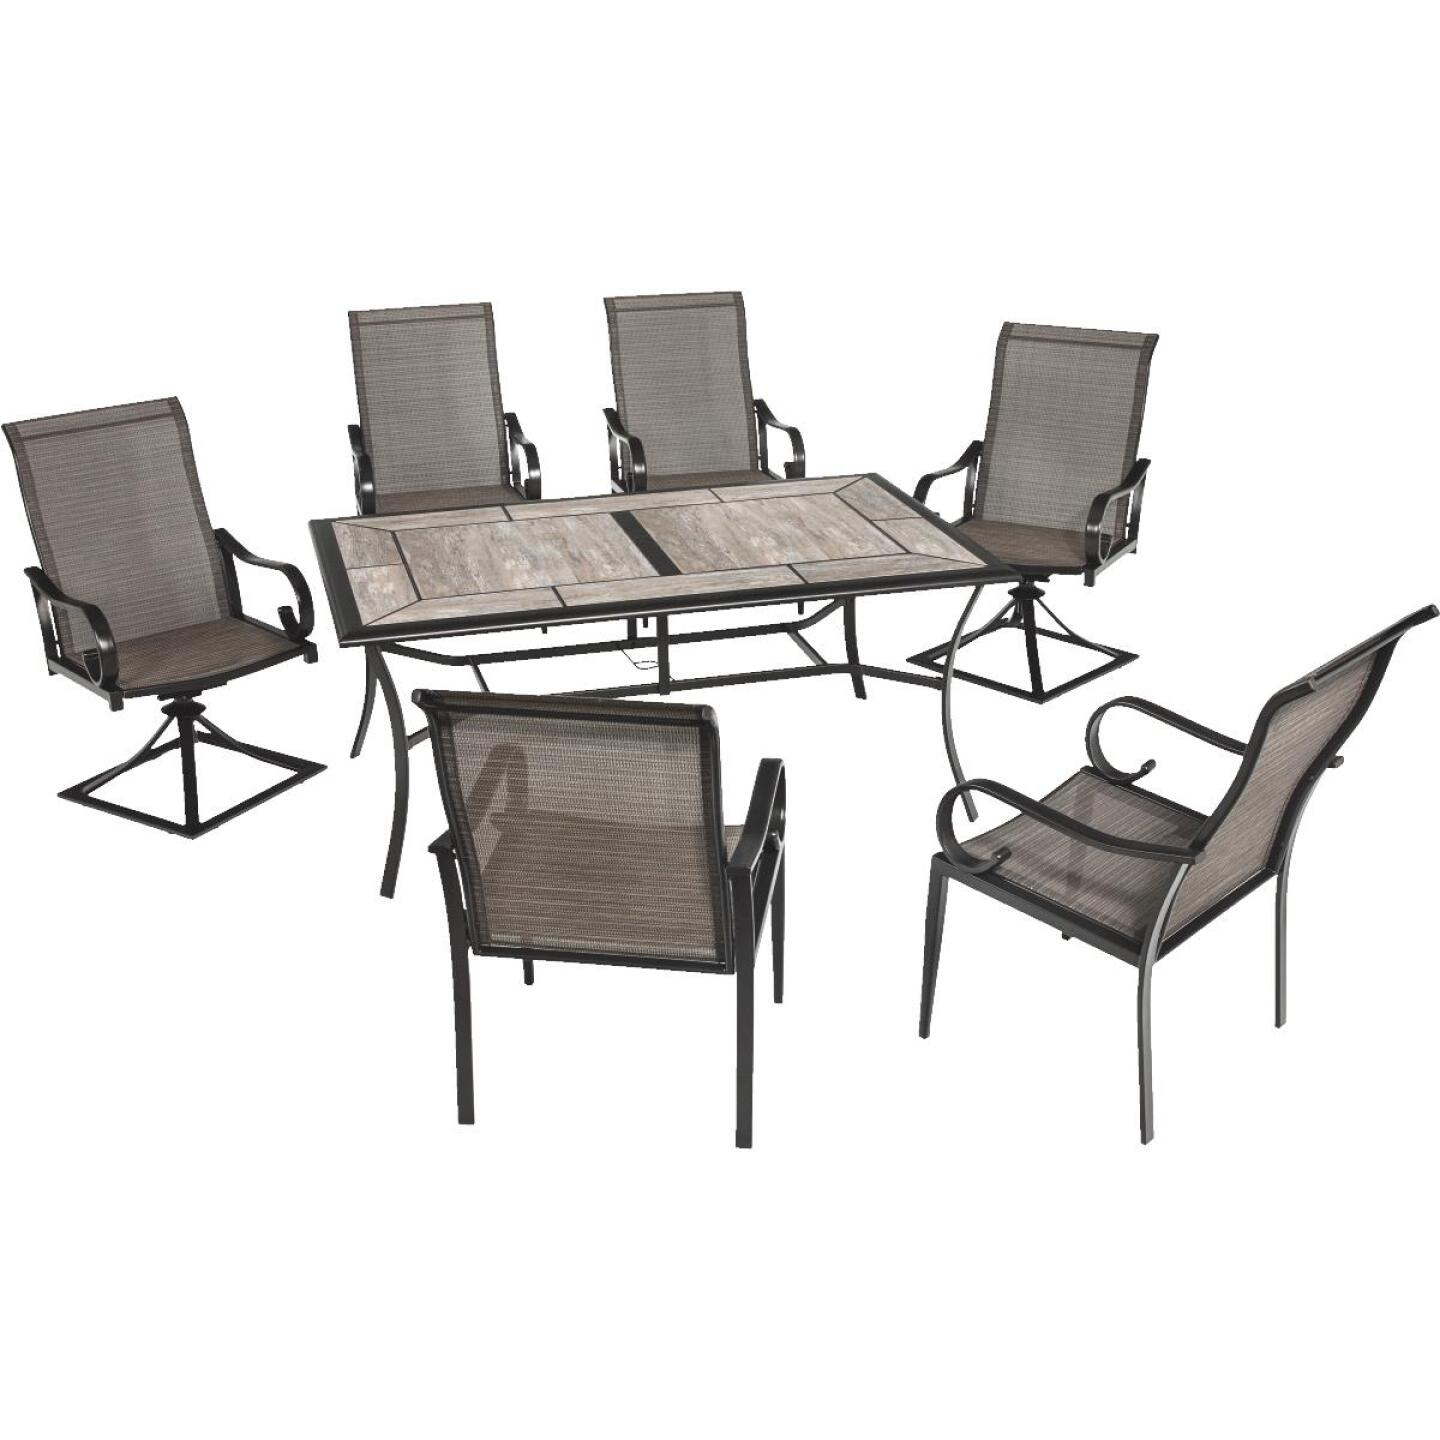 Outdoor Expressions Berkshire 7-Piece Dining Set Image 223